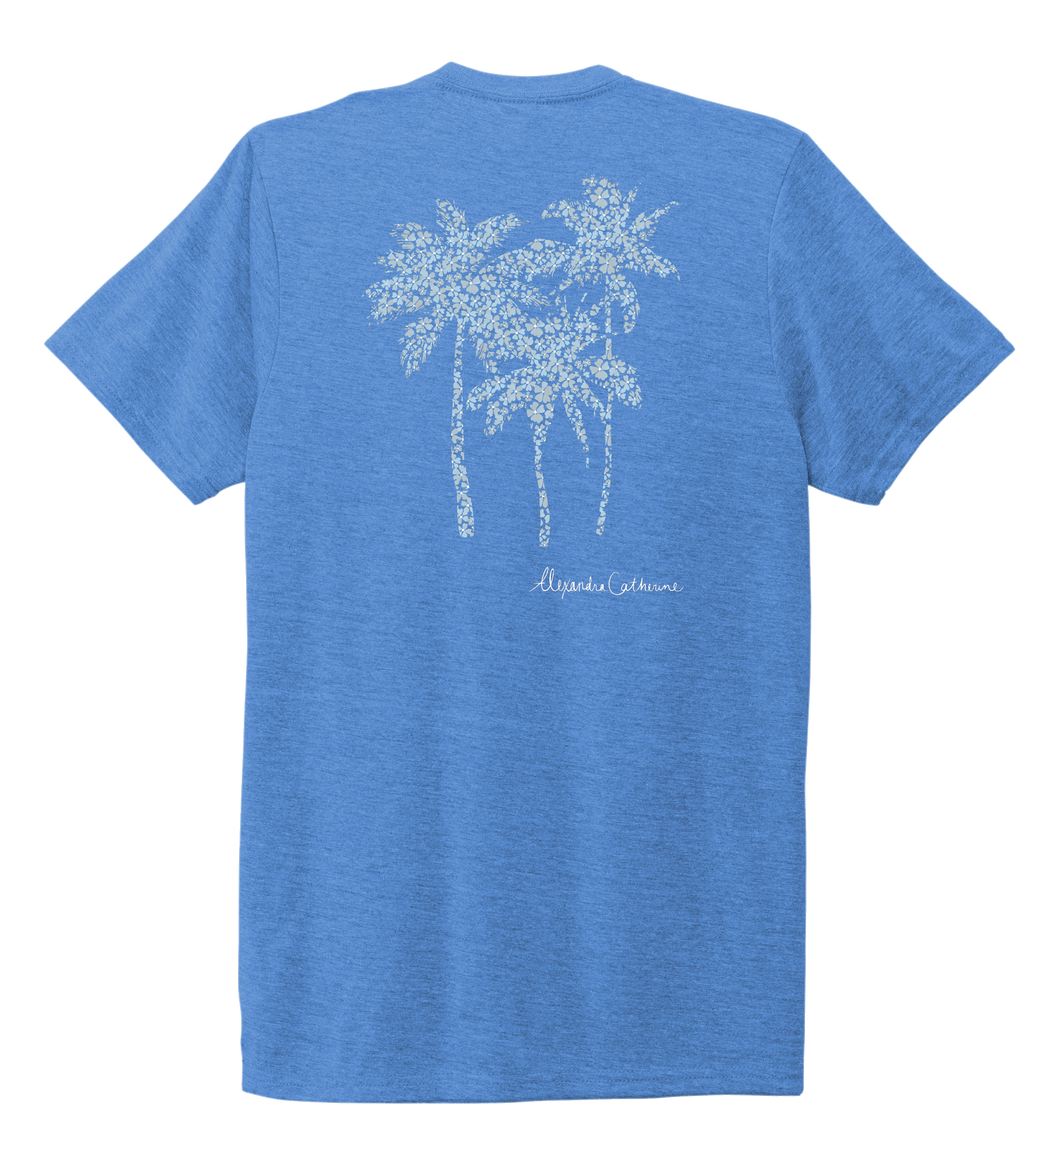 Alexandra Catherine, Palm Trees, Unisex Crew Neck T-shirt in Sky Blue